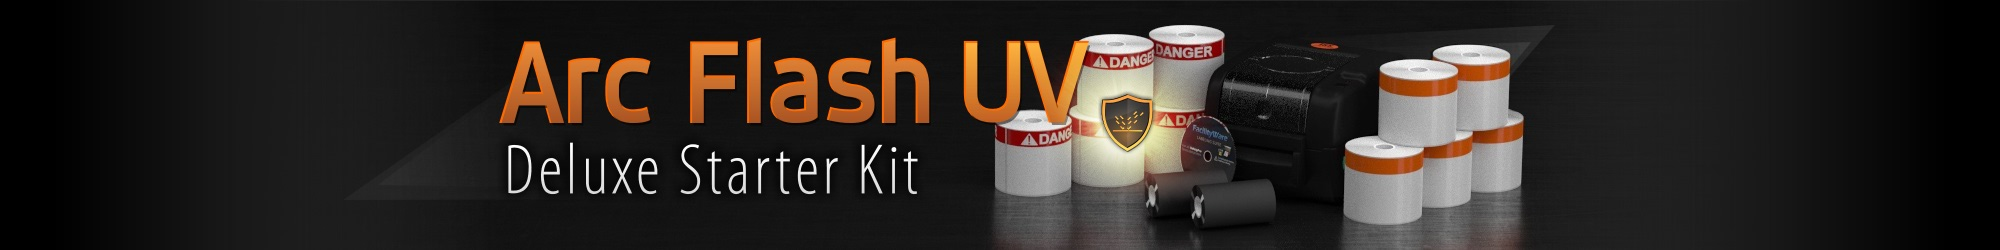 Arc Flash UV Deluxe Starter Kit